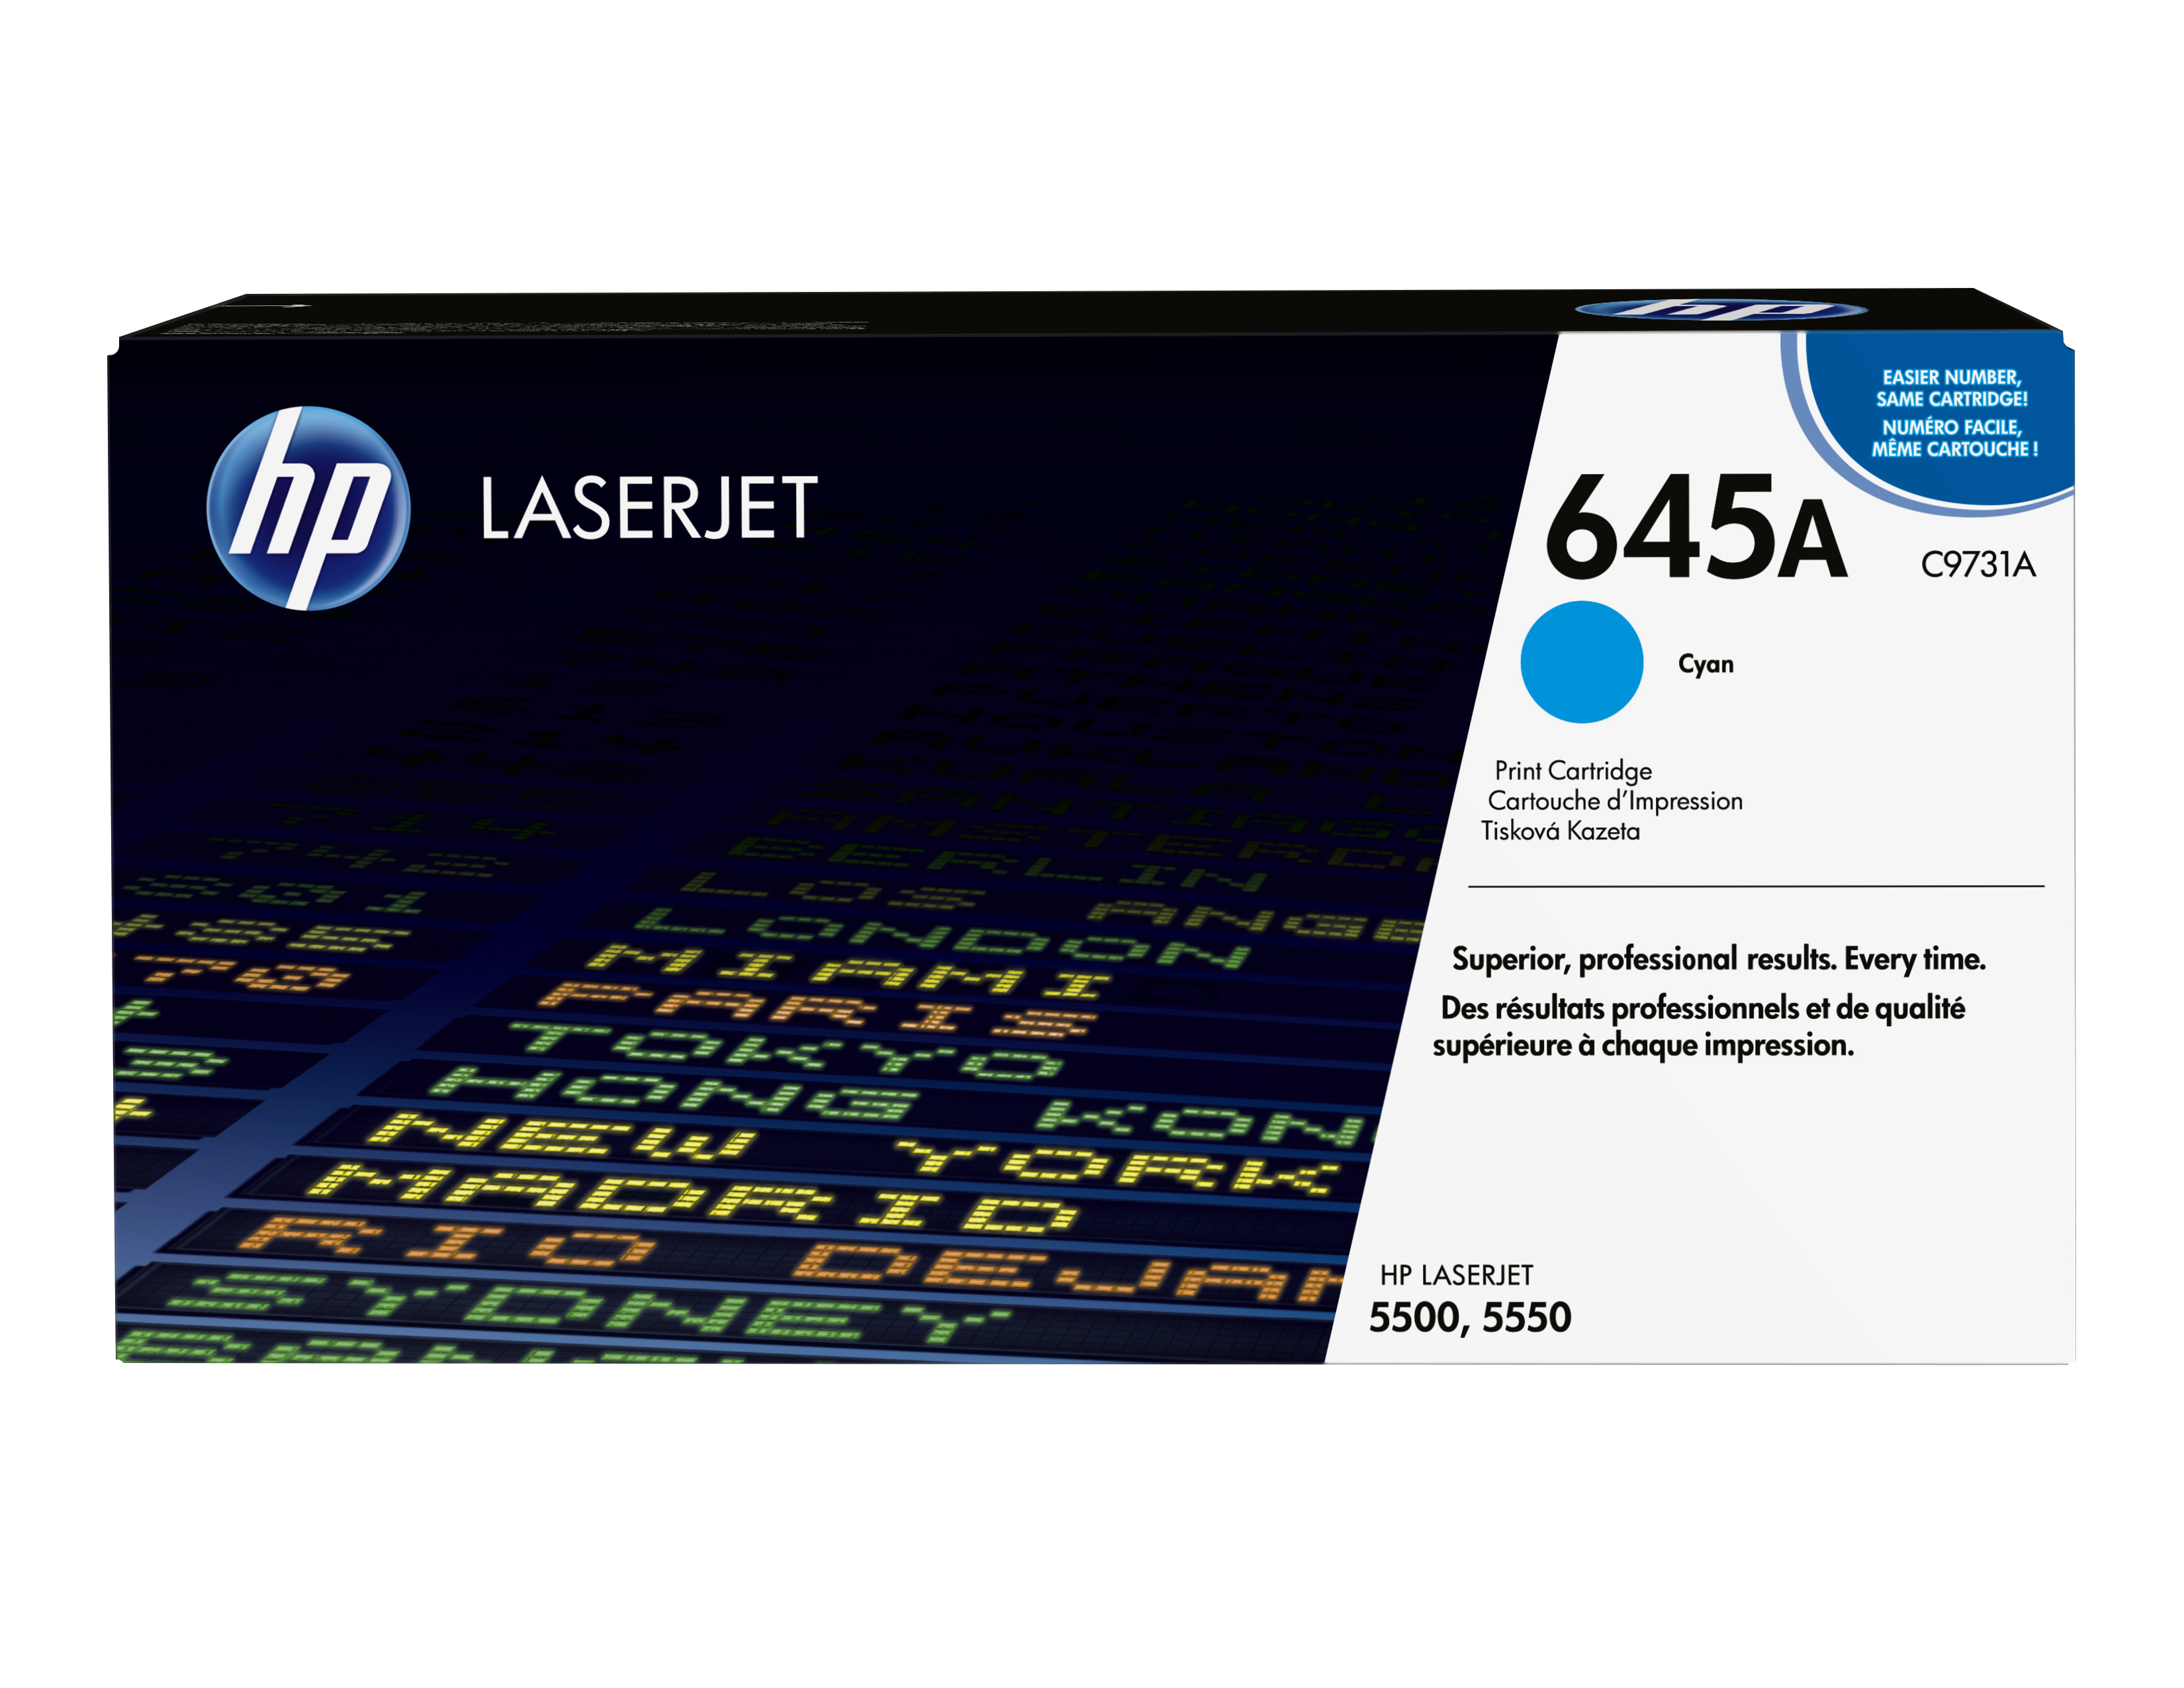 Remanufactured HP C9731A Toner Cartridge Cyan 12K C9731A - rem01